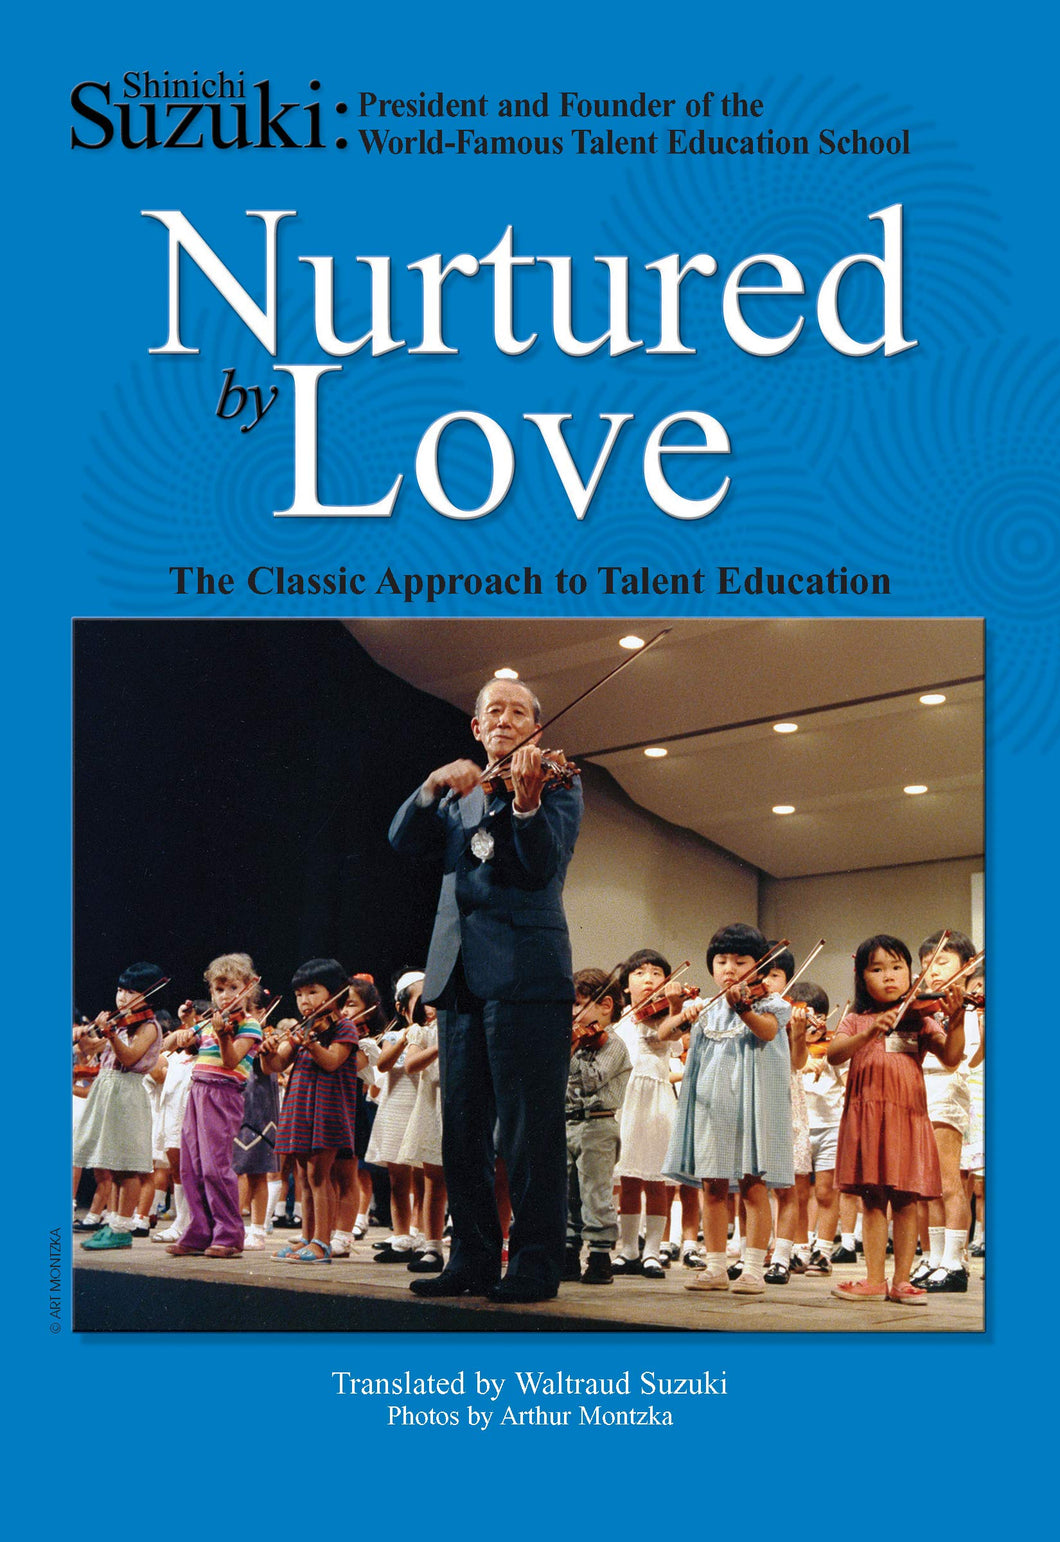 Nurtured by Love: The Classic Approach to Talent Education (Paperback)